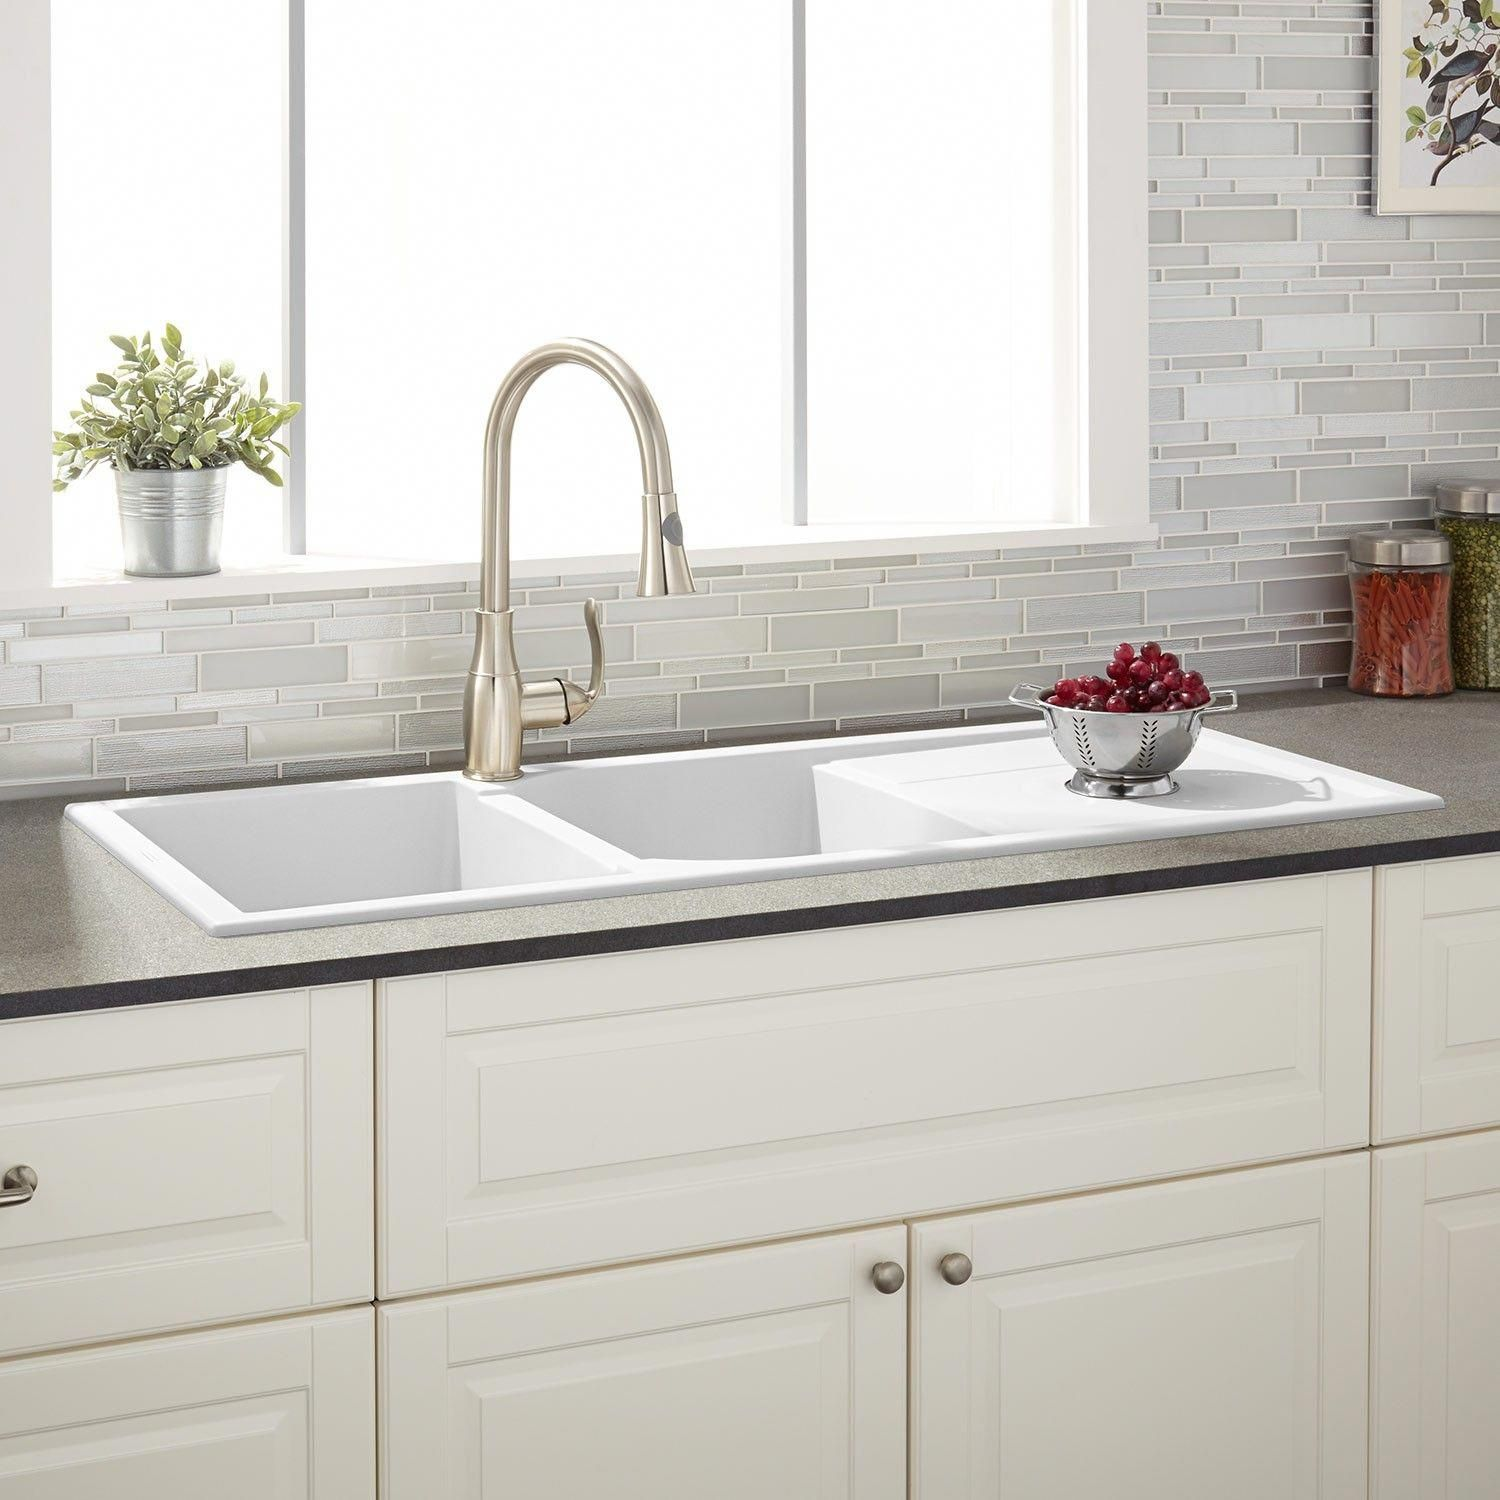 46 Tansi Double Bowl Drop In Sink With Drain Board White Kitchensinkideas Composite Kitchen Sinks Drop In Kitchen Sink